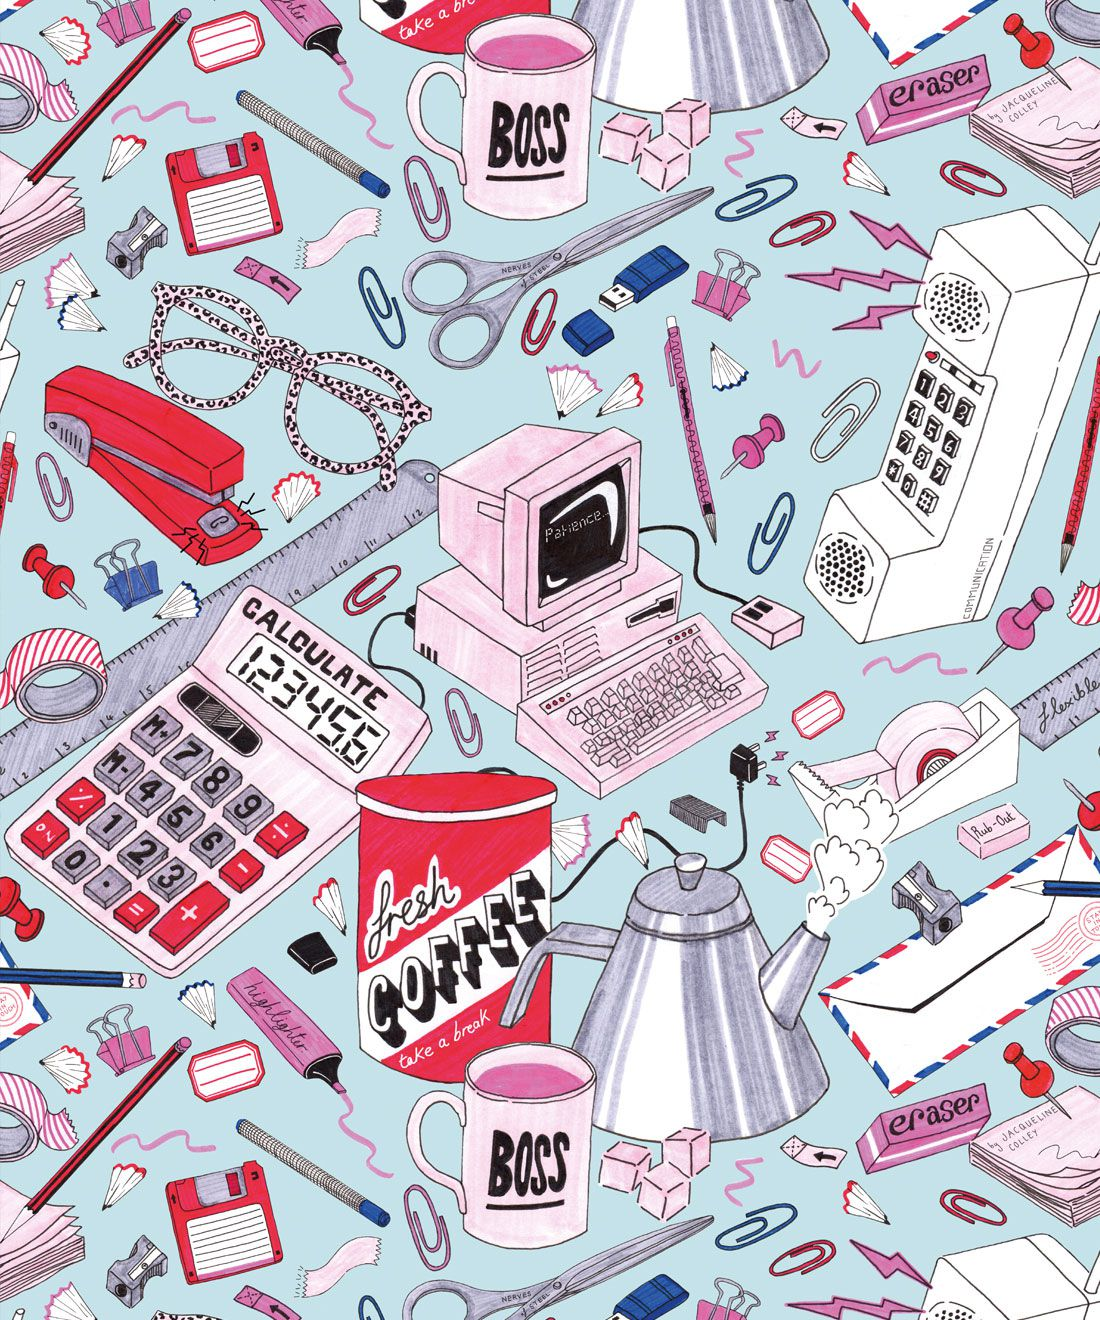 1980's Office Wallpaper featuring calculators, staplers, computers, phones on a messy desk • retro wallpaper